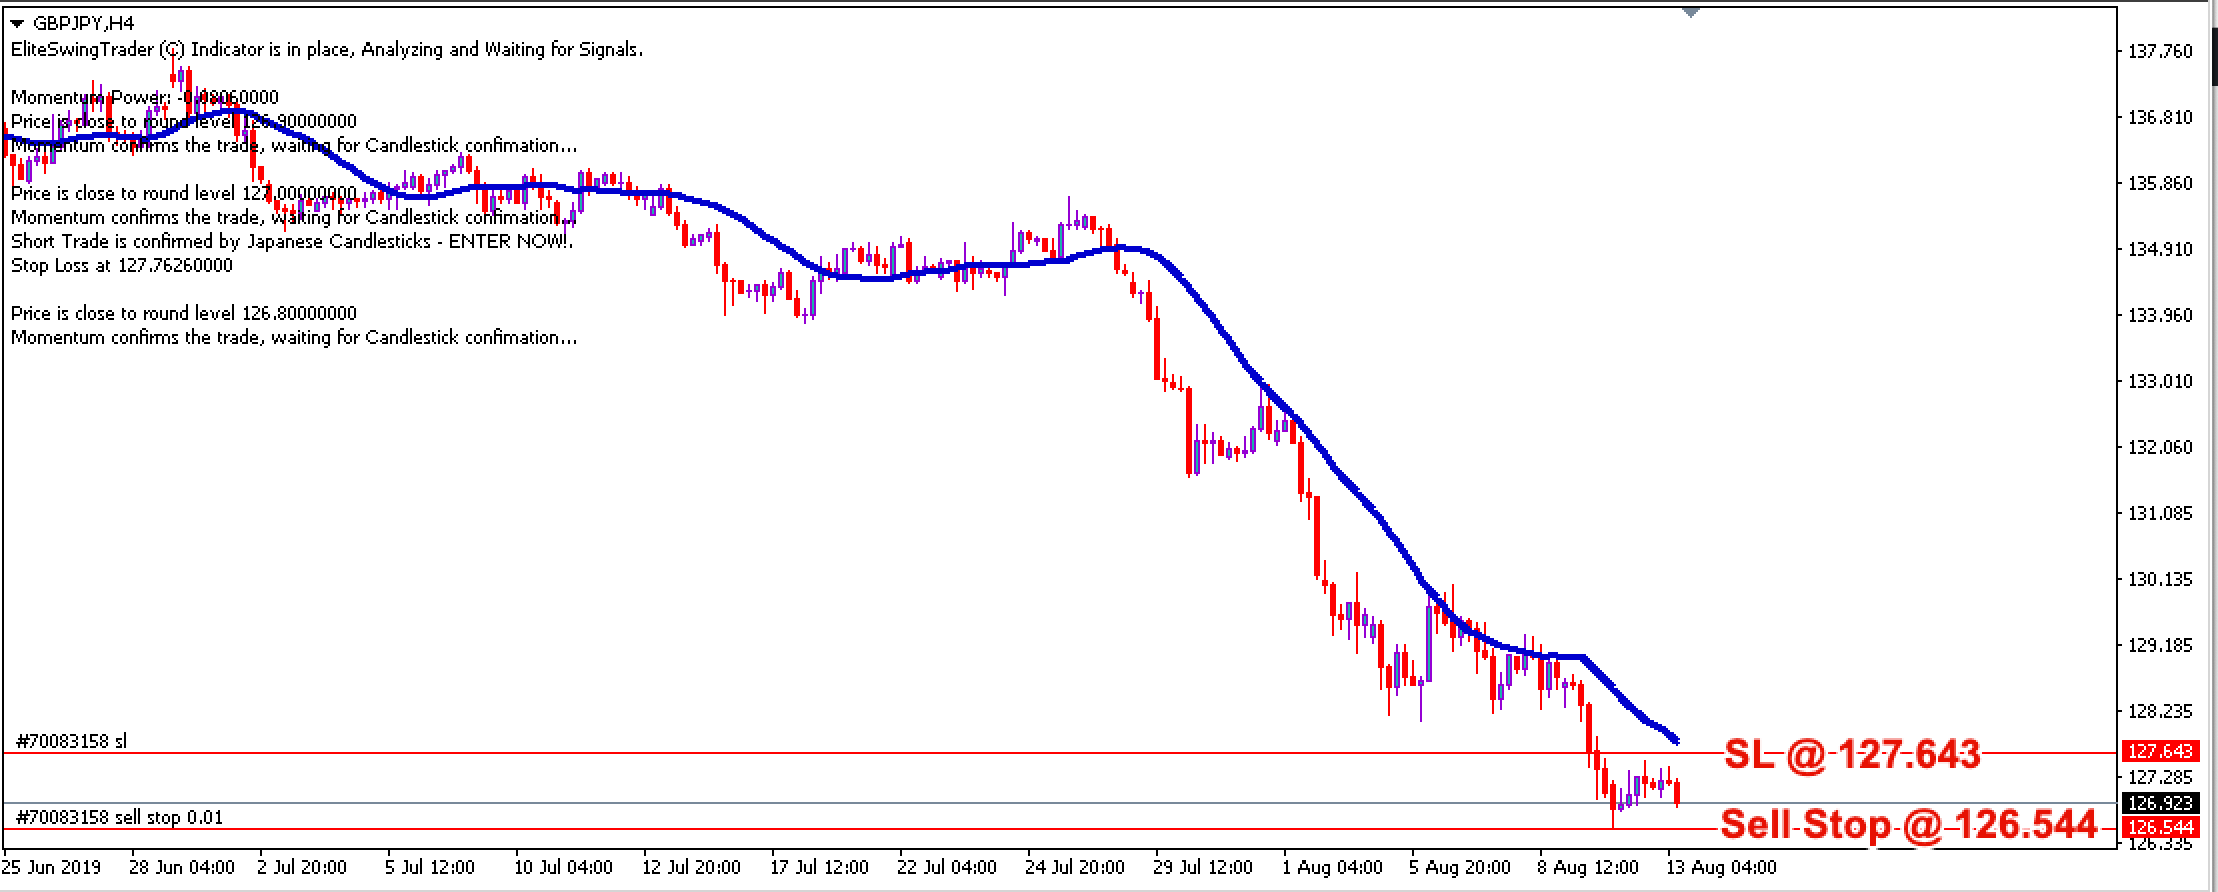 Elite Swing Trader Trade Signals GBPJPY – 13th August 2019